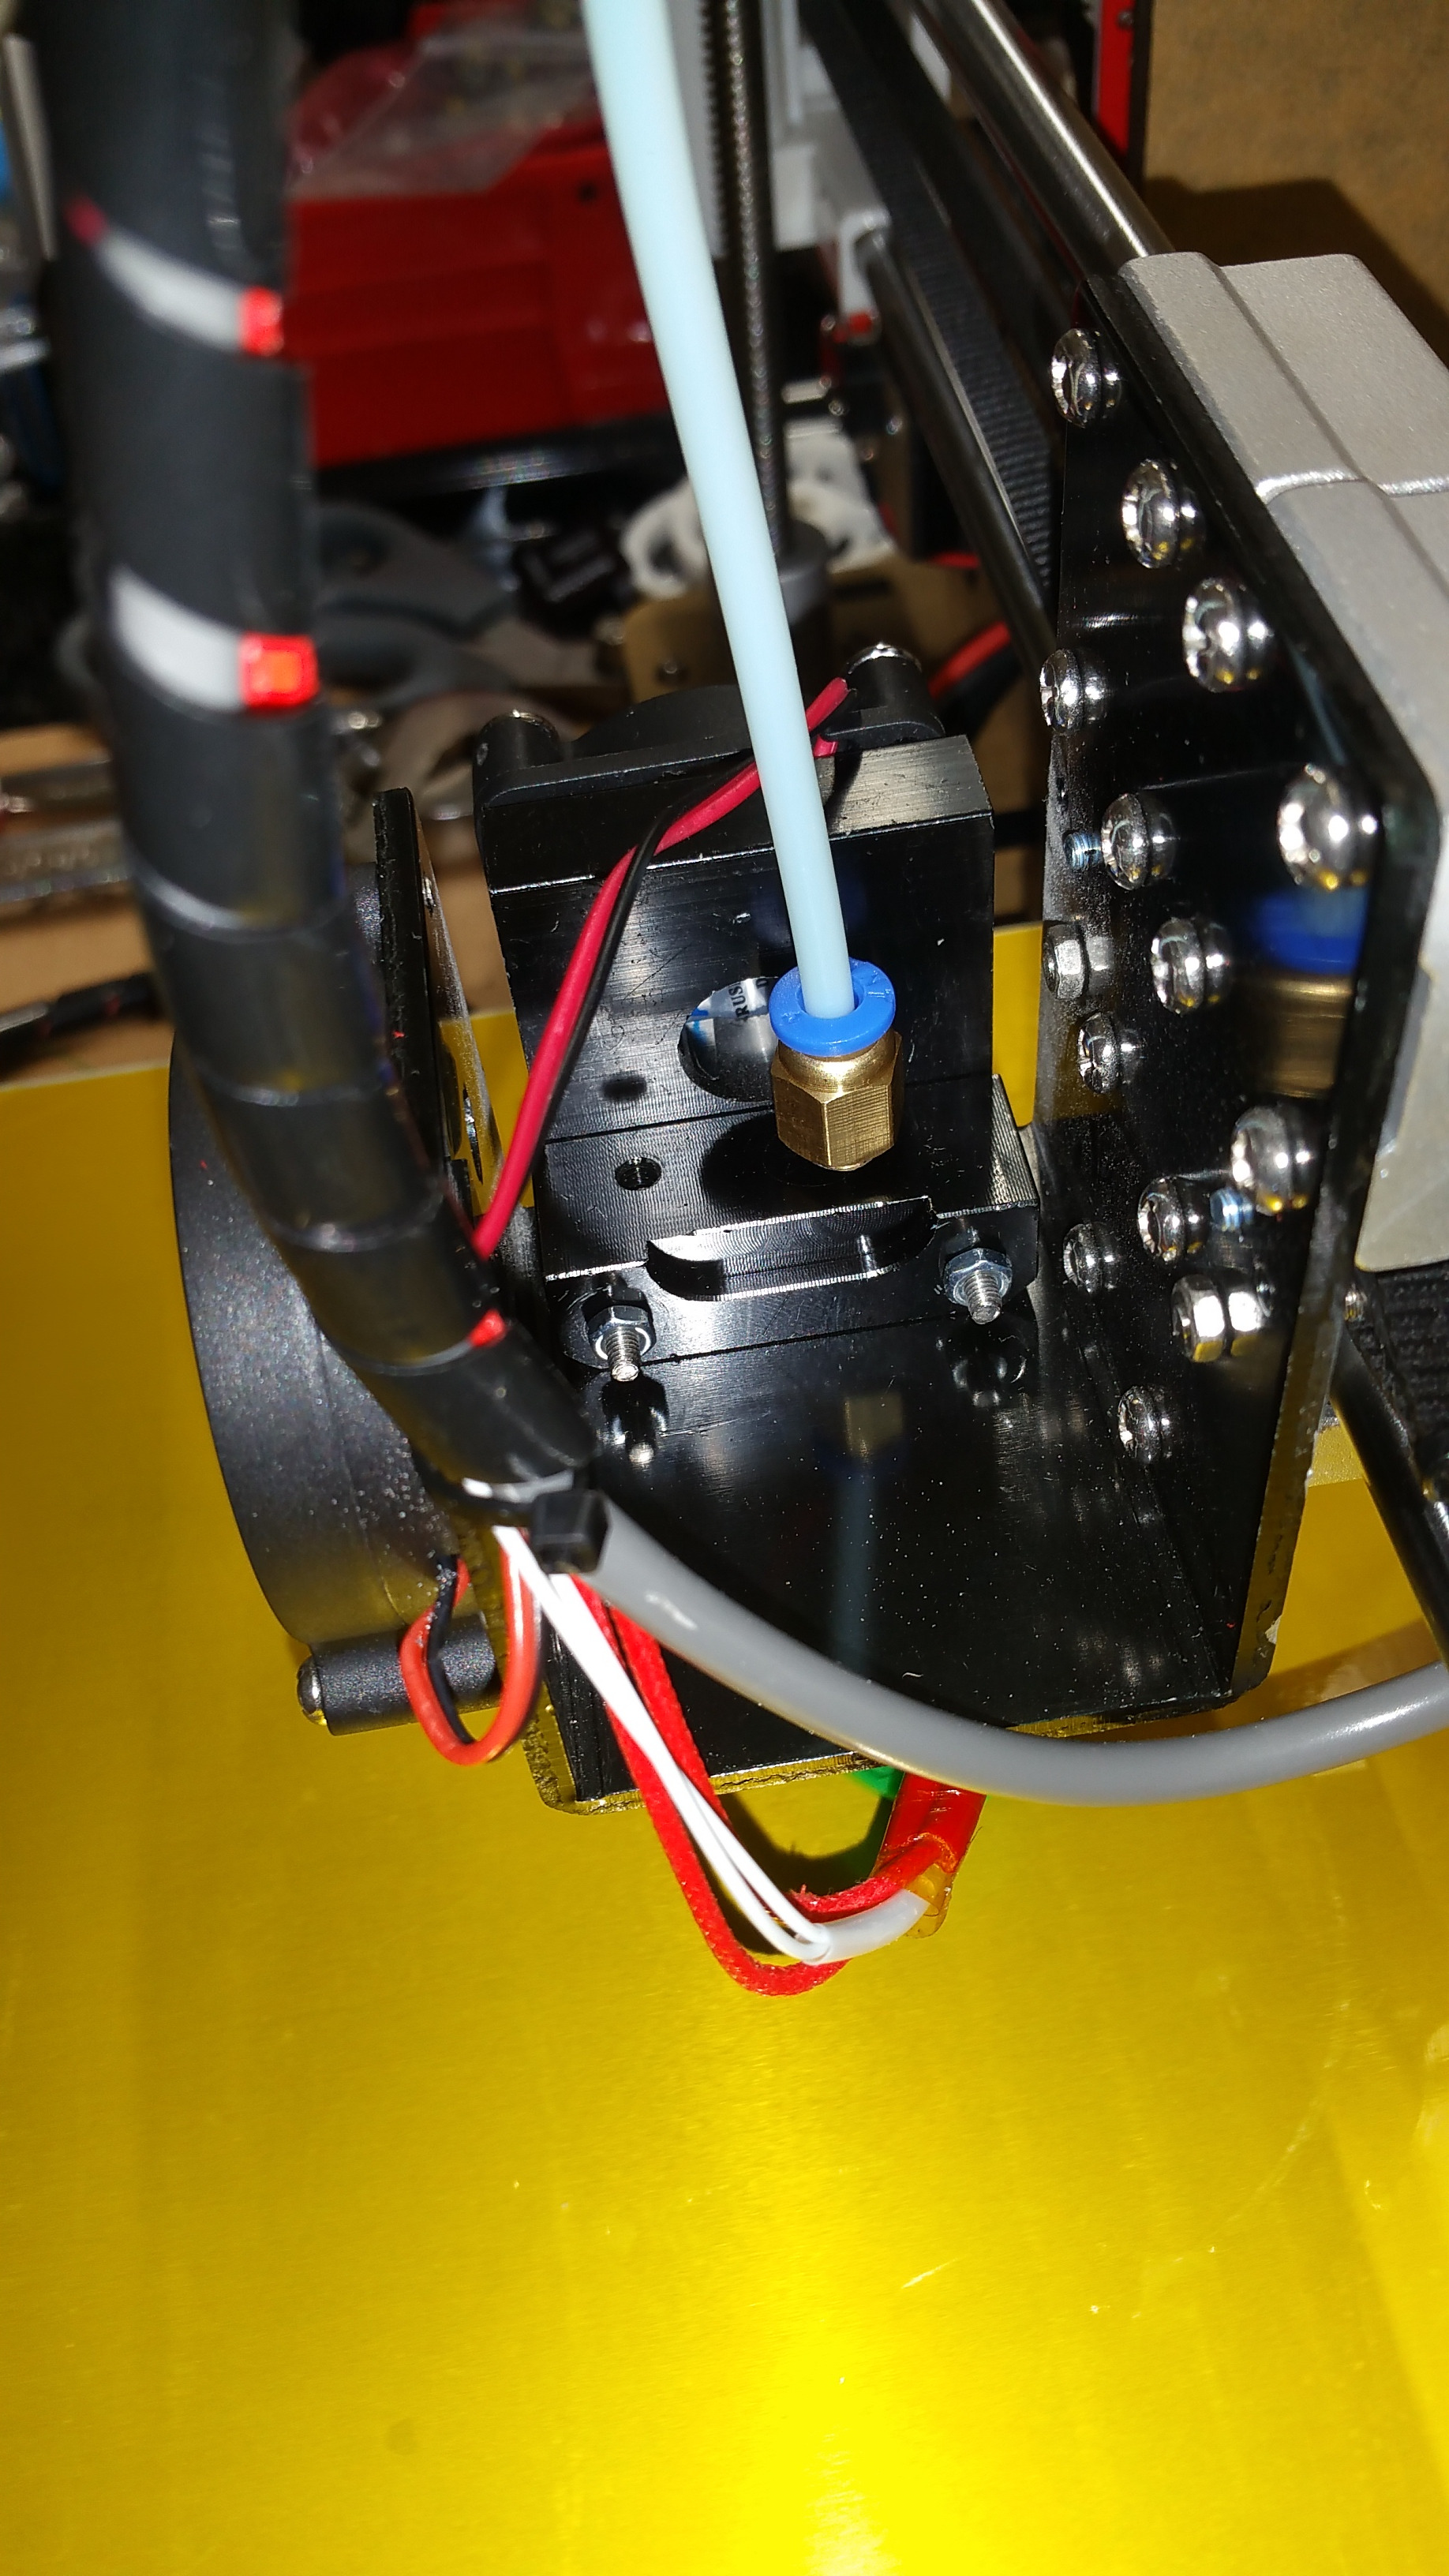 Picture of Once You Have the Stepper Motor Attached to the Frame...